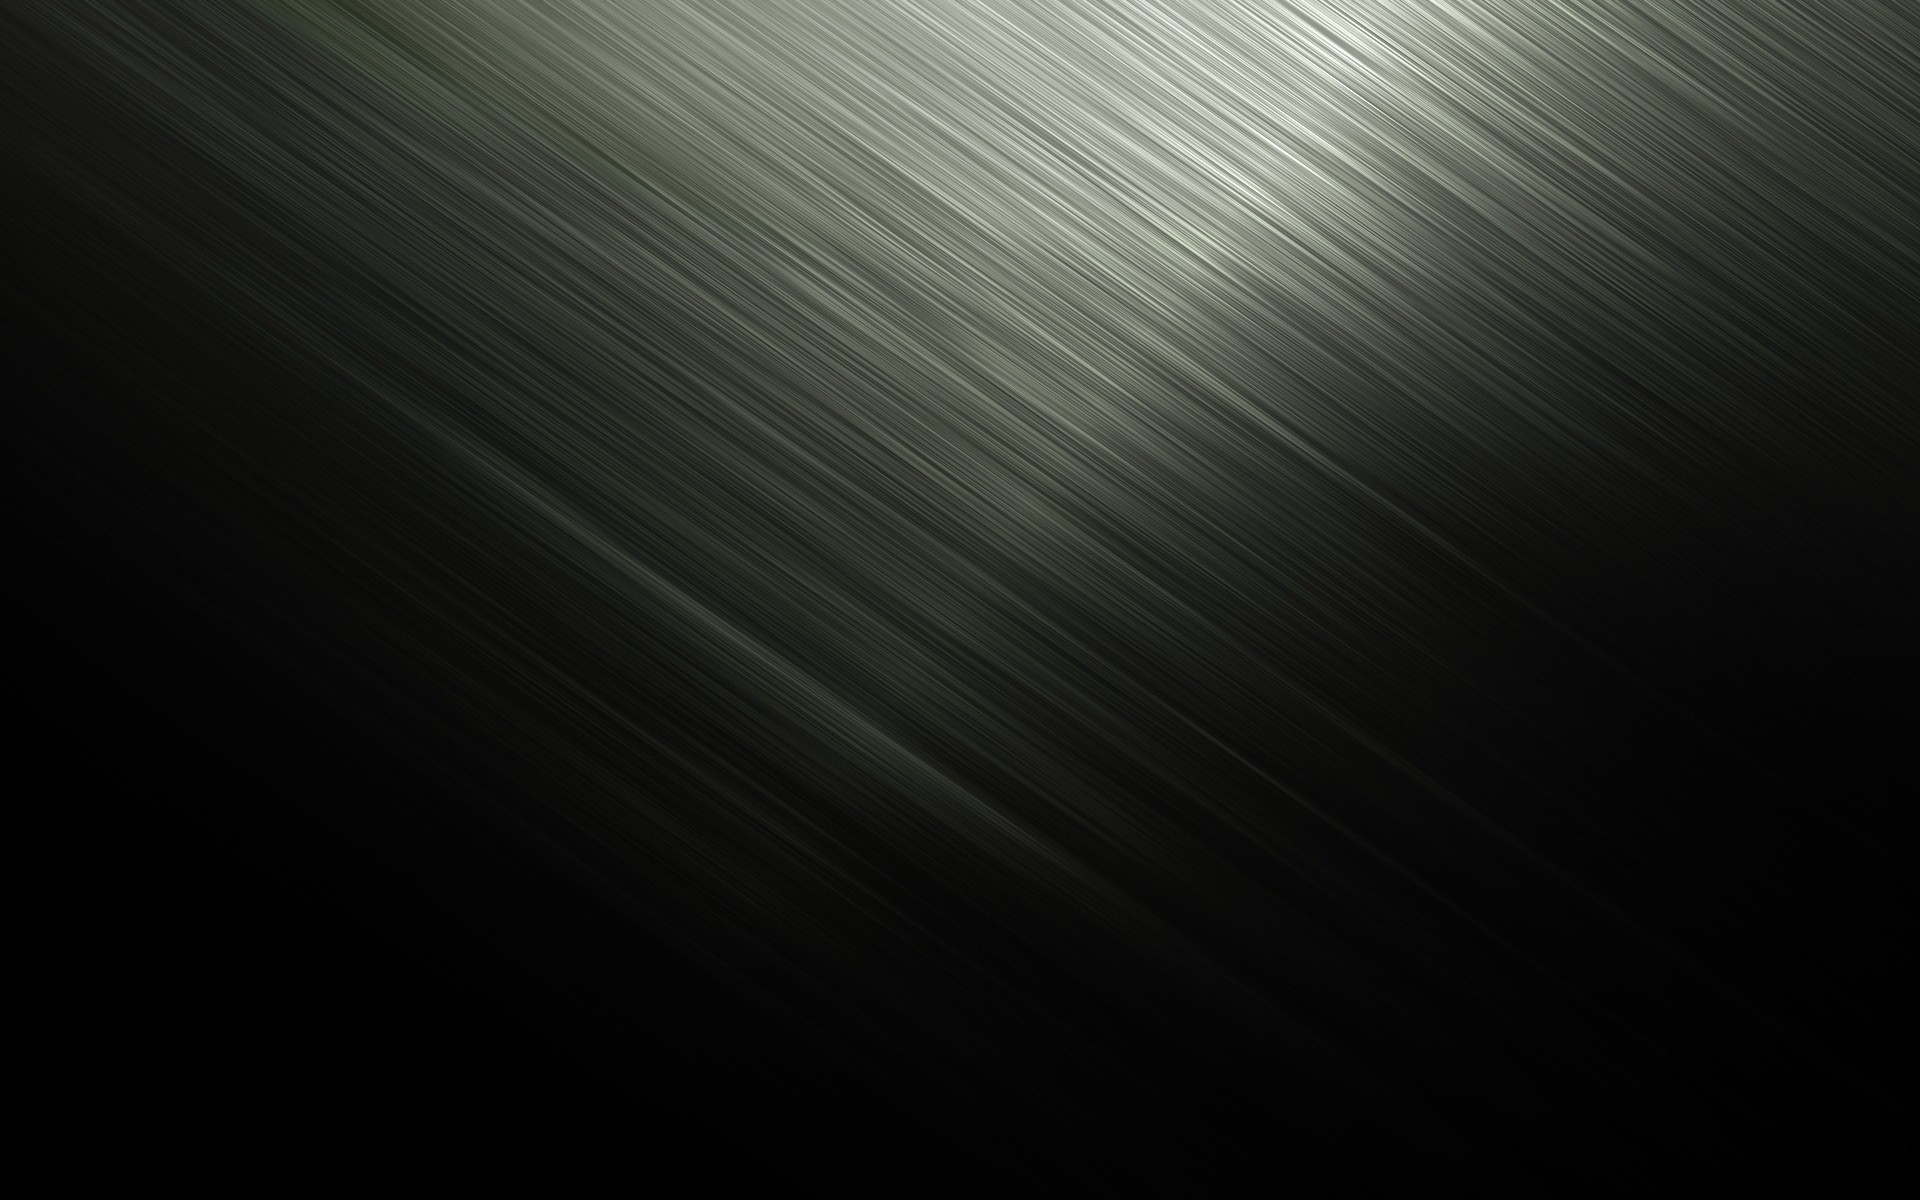 1920x1200 Abstract Black Wallpaper 1920x1200 Abstract, Black